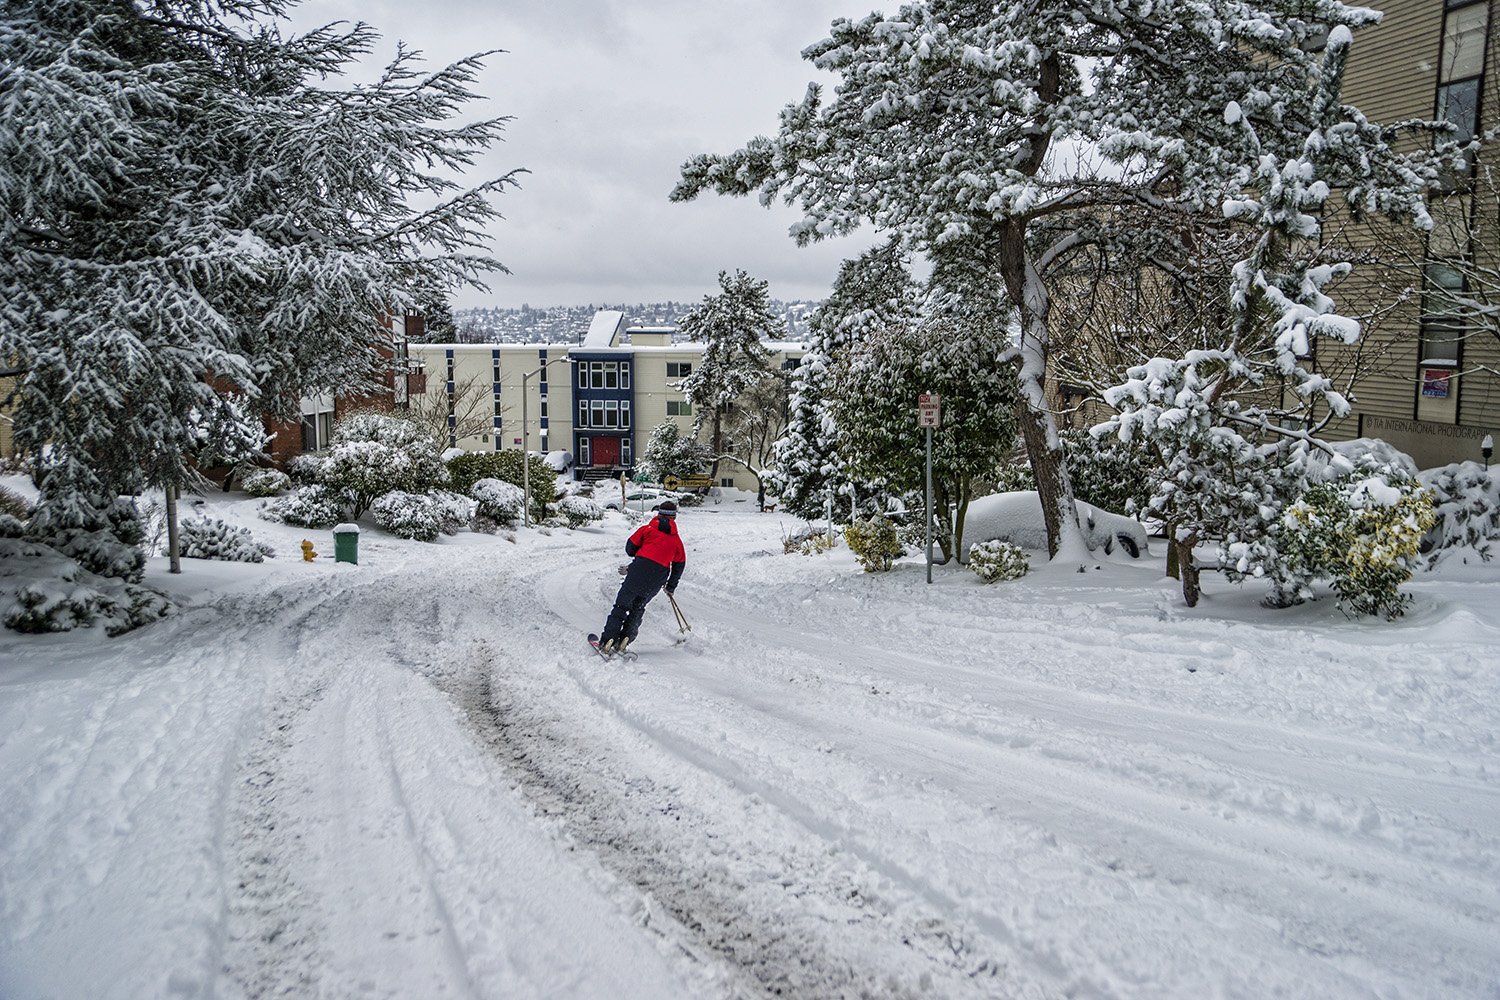 Skiing down Manor Place, Magnolia, Seattle (February 13, 2021).